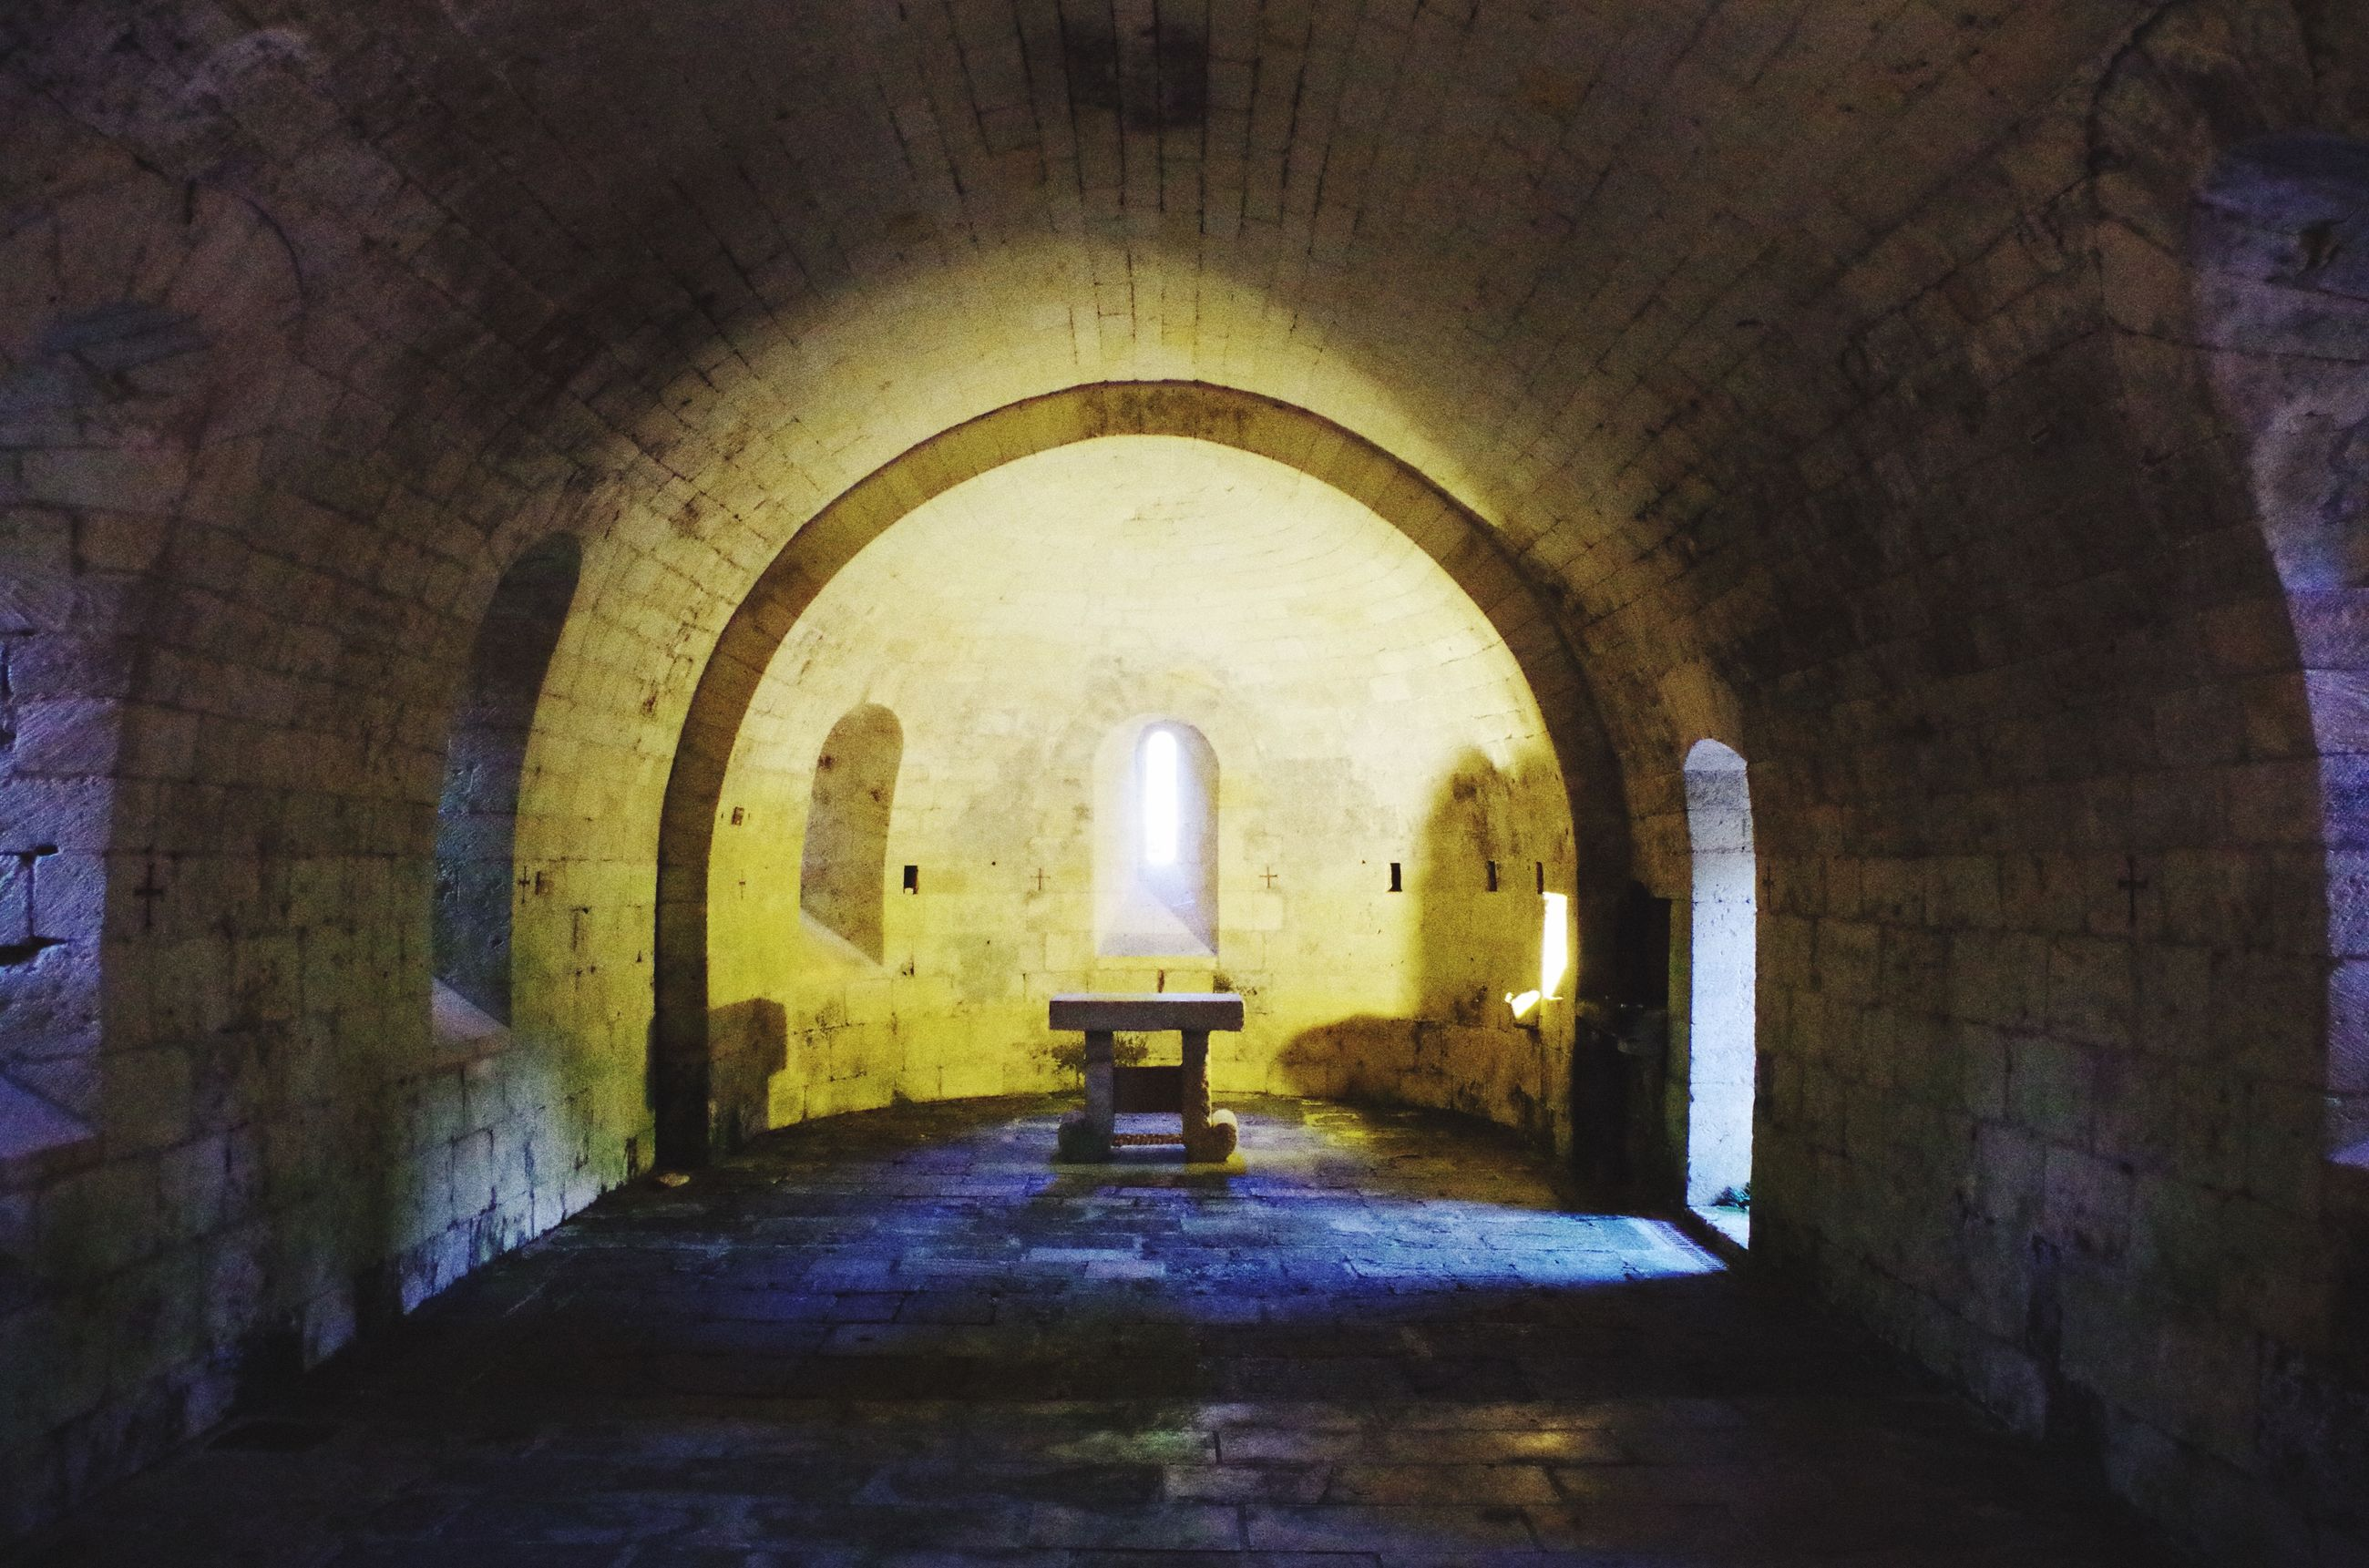 indoors, arch, architecture, built structure, the way forward, archway, tunnel, interior, ceiling, corridor, empty, old, building, narrow, wall - building feature, diminishing perspective, abandoned, illuminated, wall, absence